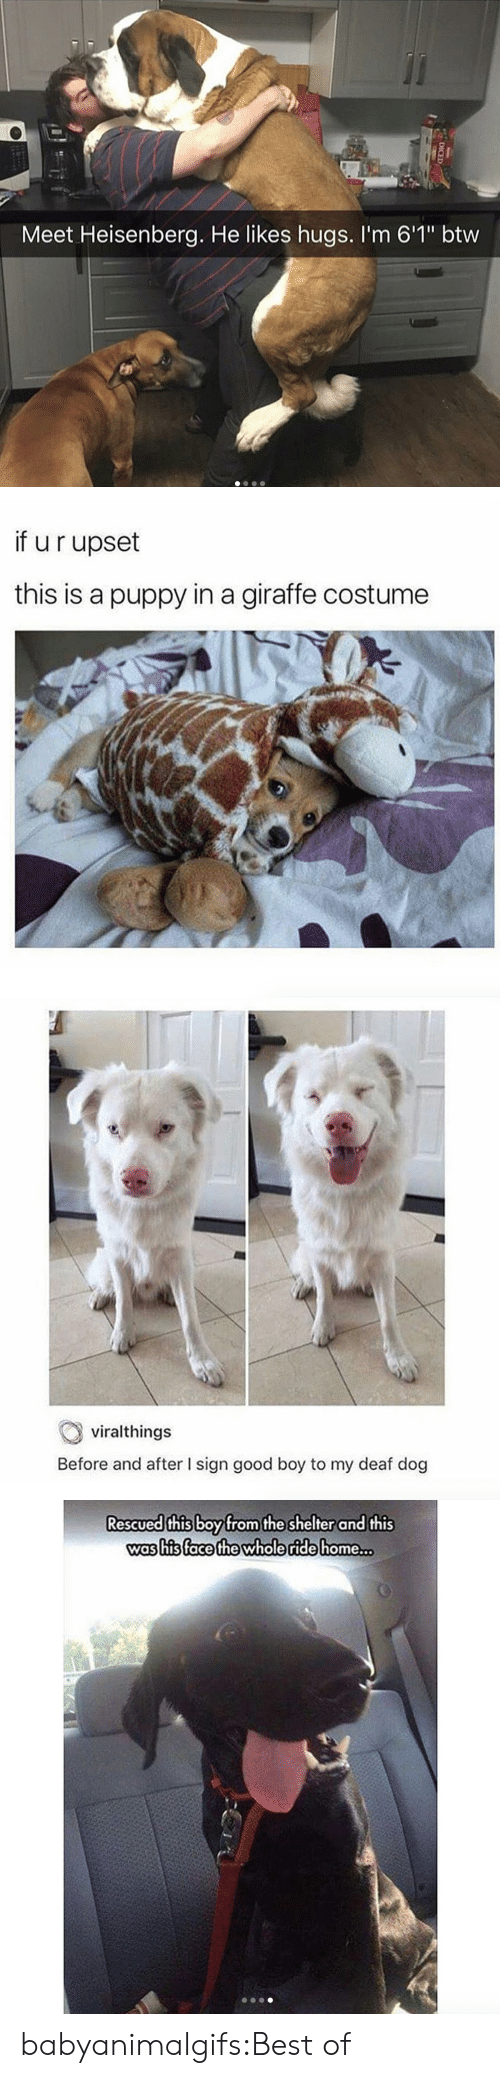 """heisenberg: Meet Heisenberg. He likes hugs. I'm 6'1"""" btw   if u r upset  this is a puppy in a giraffe costume   viralthings  Before and after I sign good boy to my deaf dog   Rescued this boyfrom the shelter and this  was his (face the whole ride home  .. babyanimalgifs:Best of"""